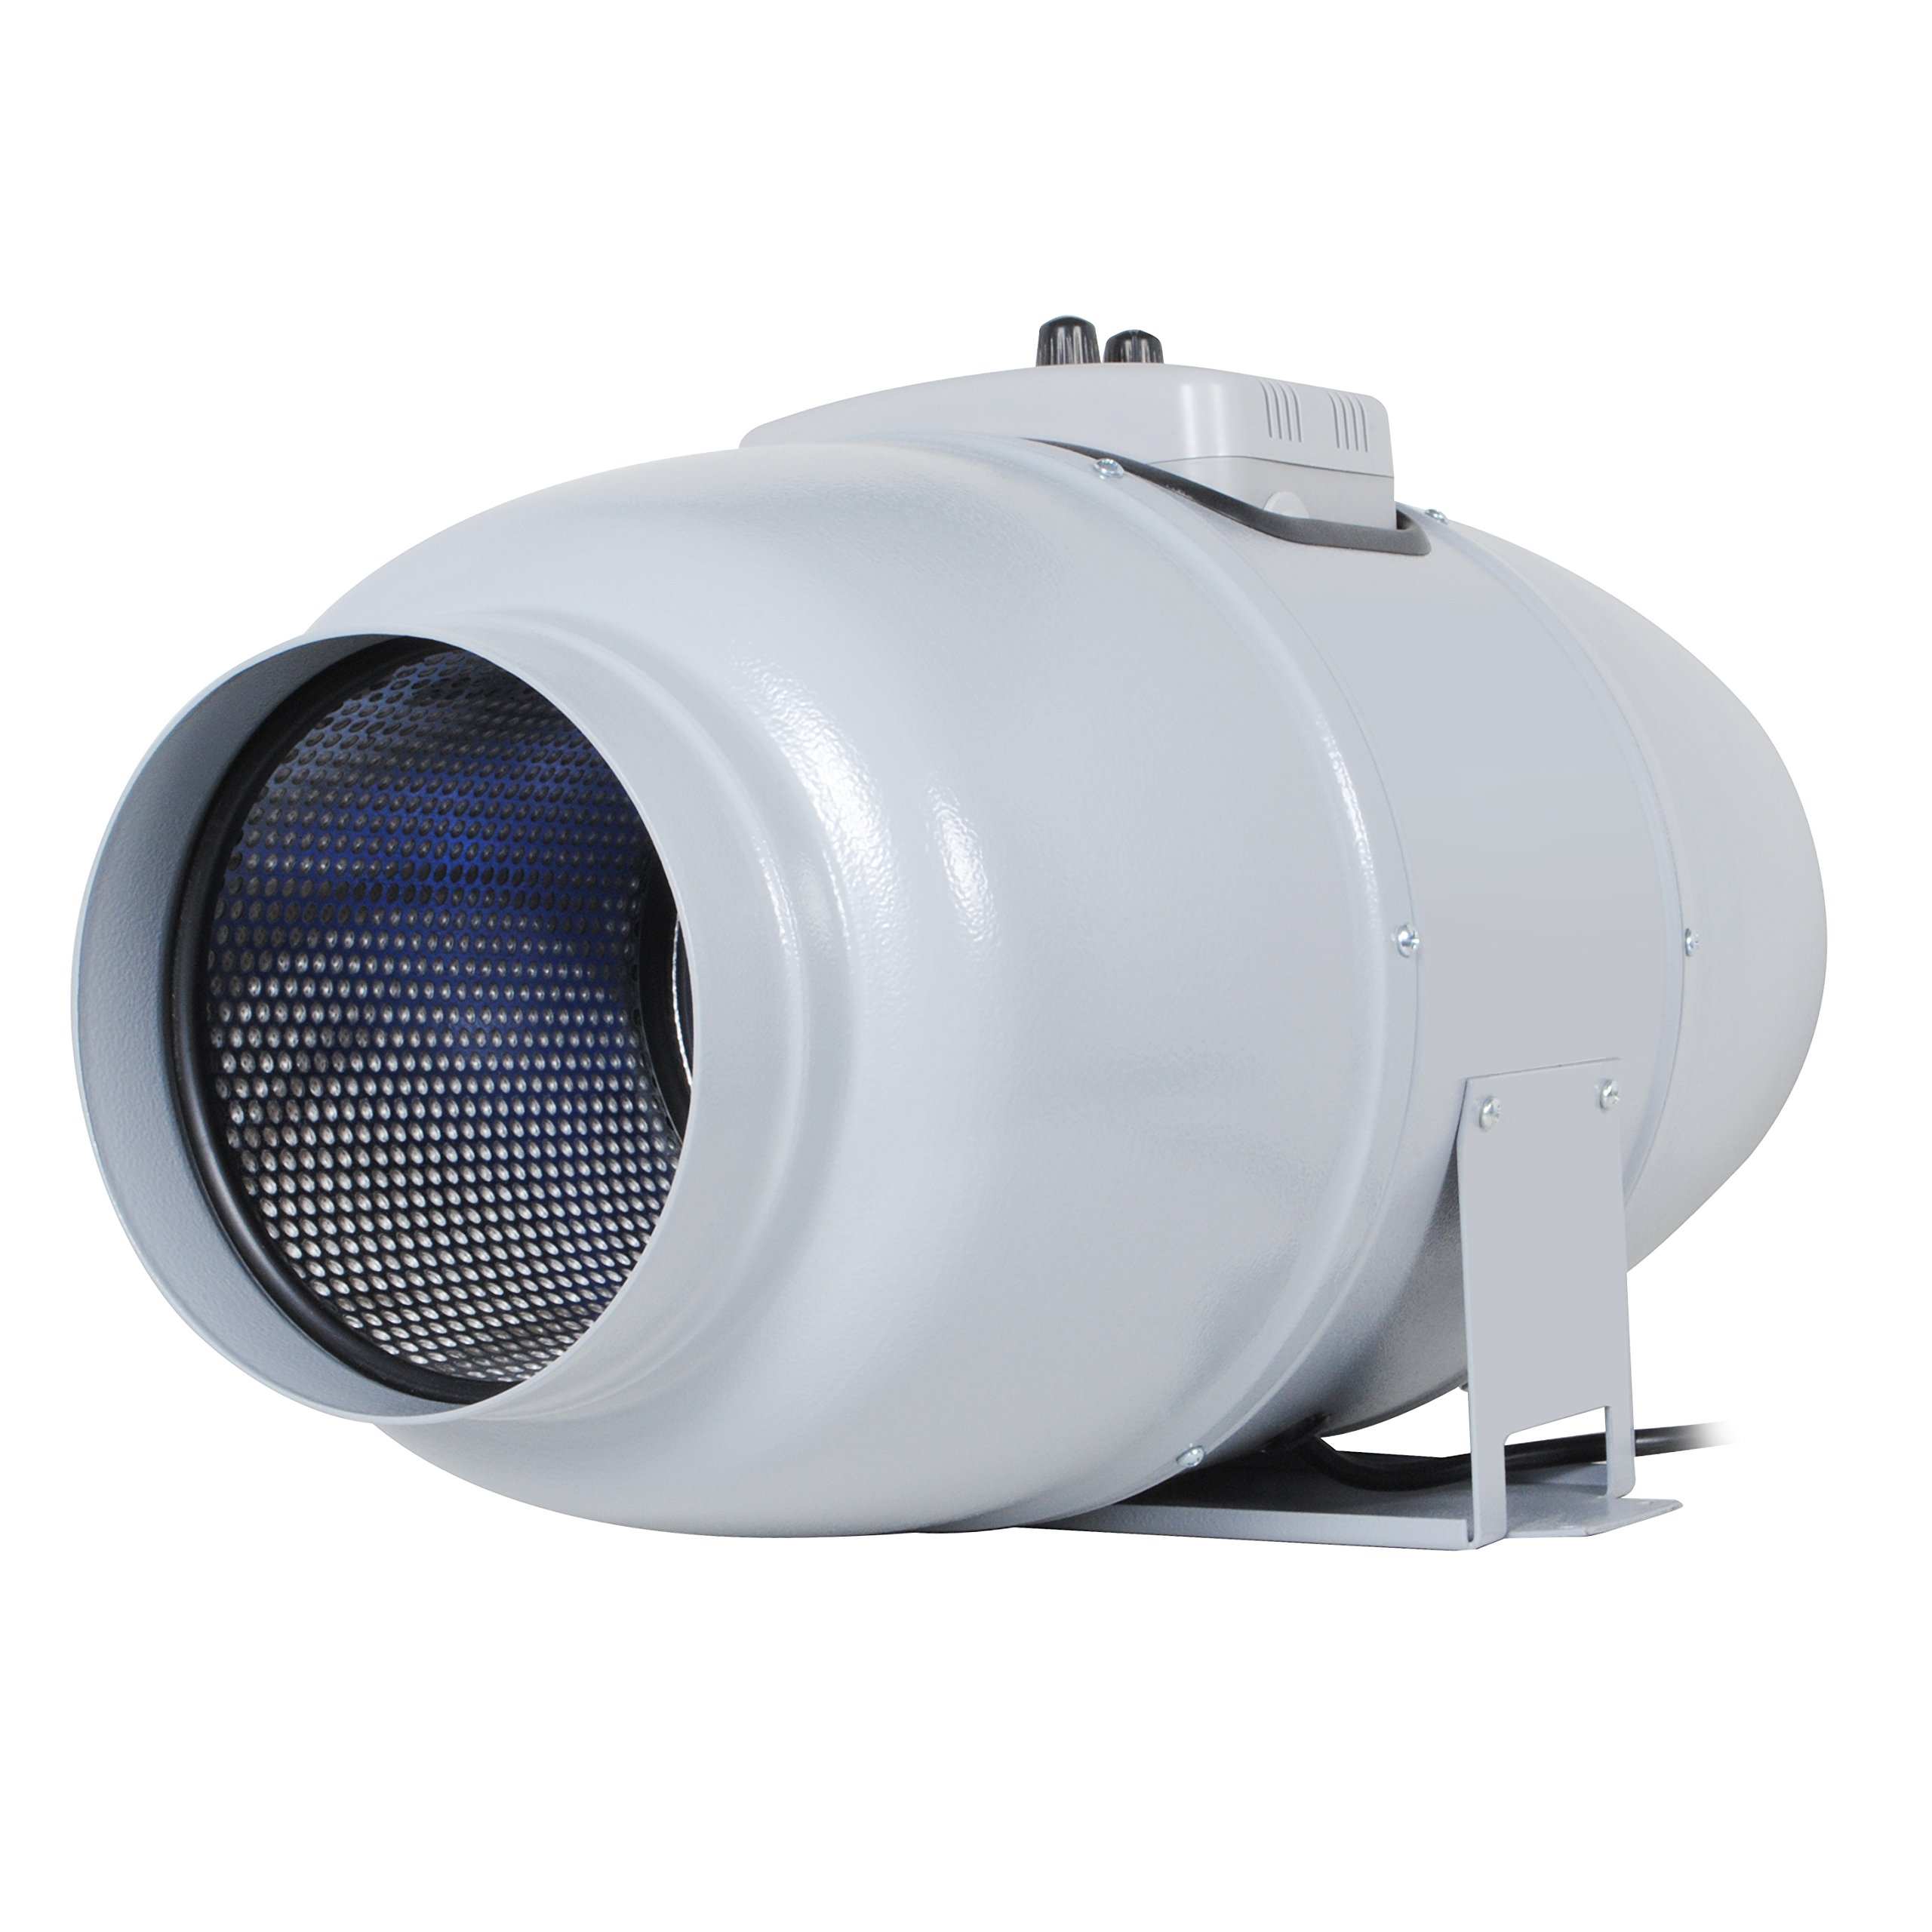 Inline Fan ''Silent Series'' For 6 Inch Ducts, 327 CFM, 67W, Ultra Quiet Sound lnsulated HVAC Vent and Grow Room Exhaust Blower with Speed Controller and Autopilot, 33 dBA, 13.89 Lb